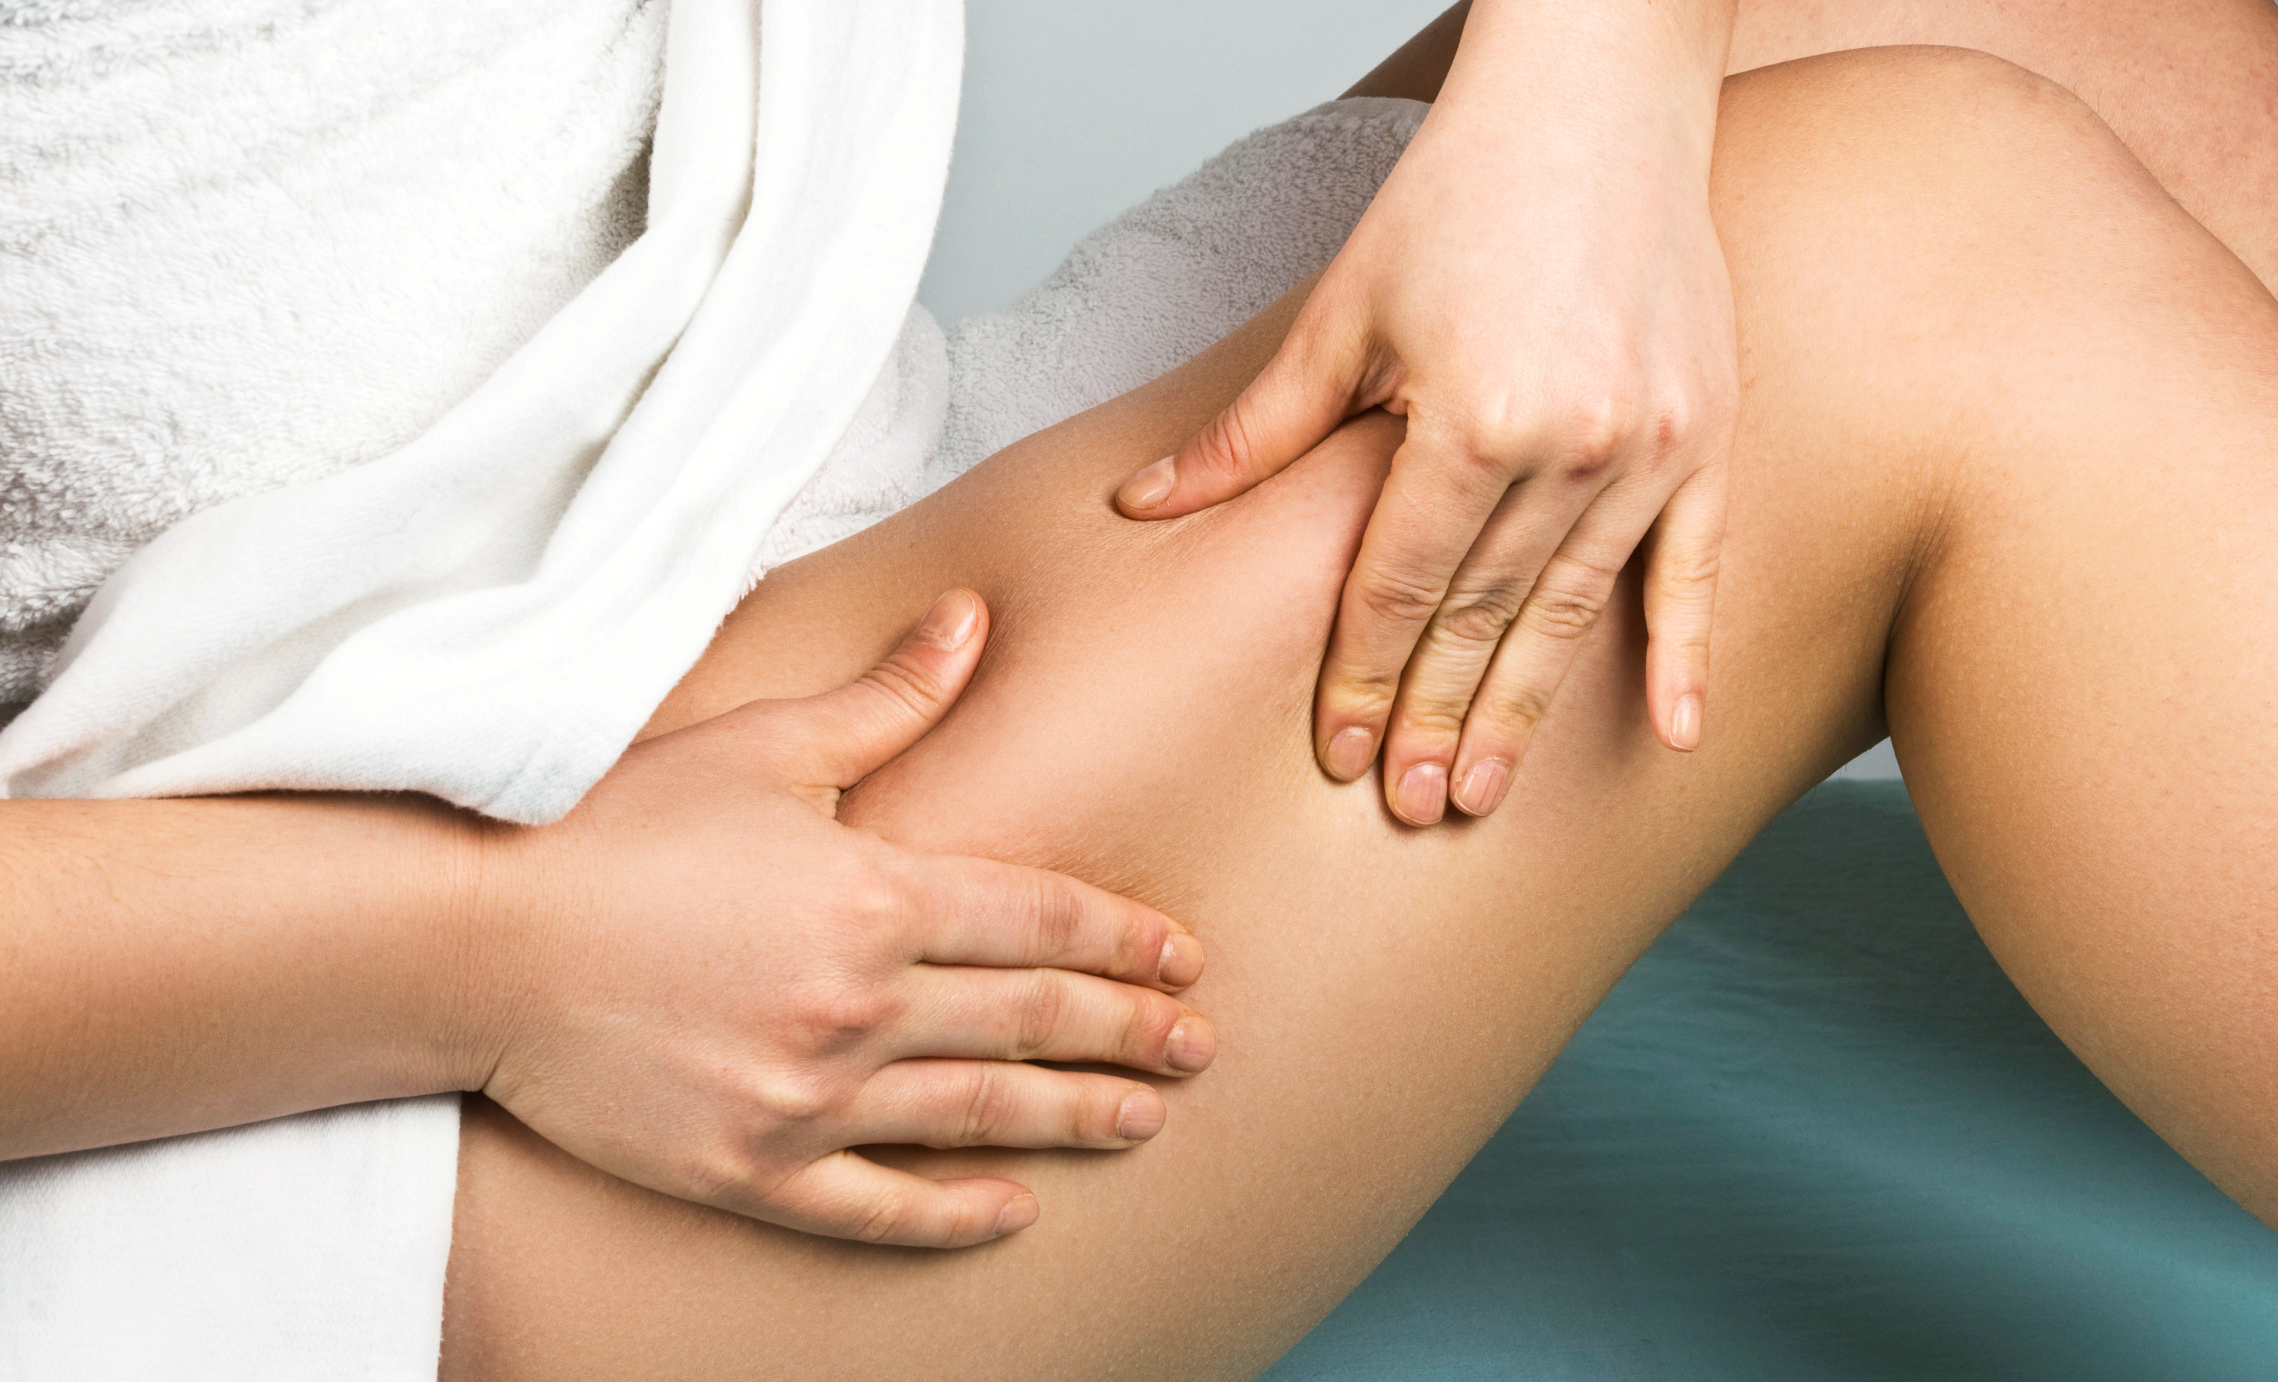 Addio cellulite con la radiofrequenza